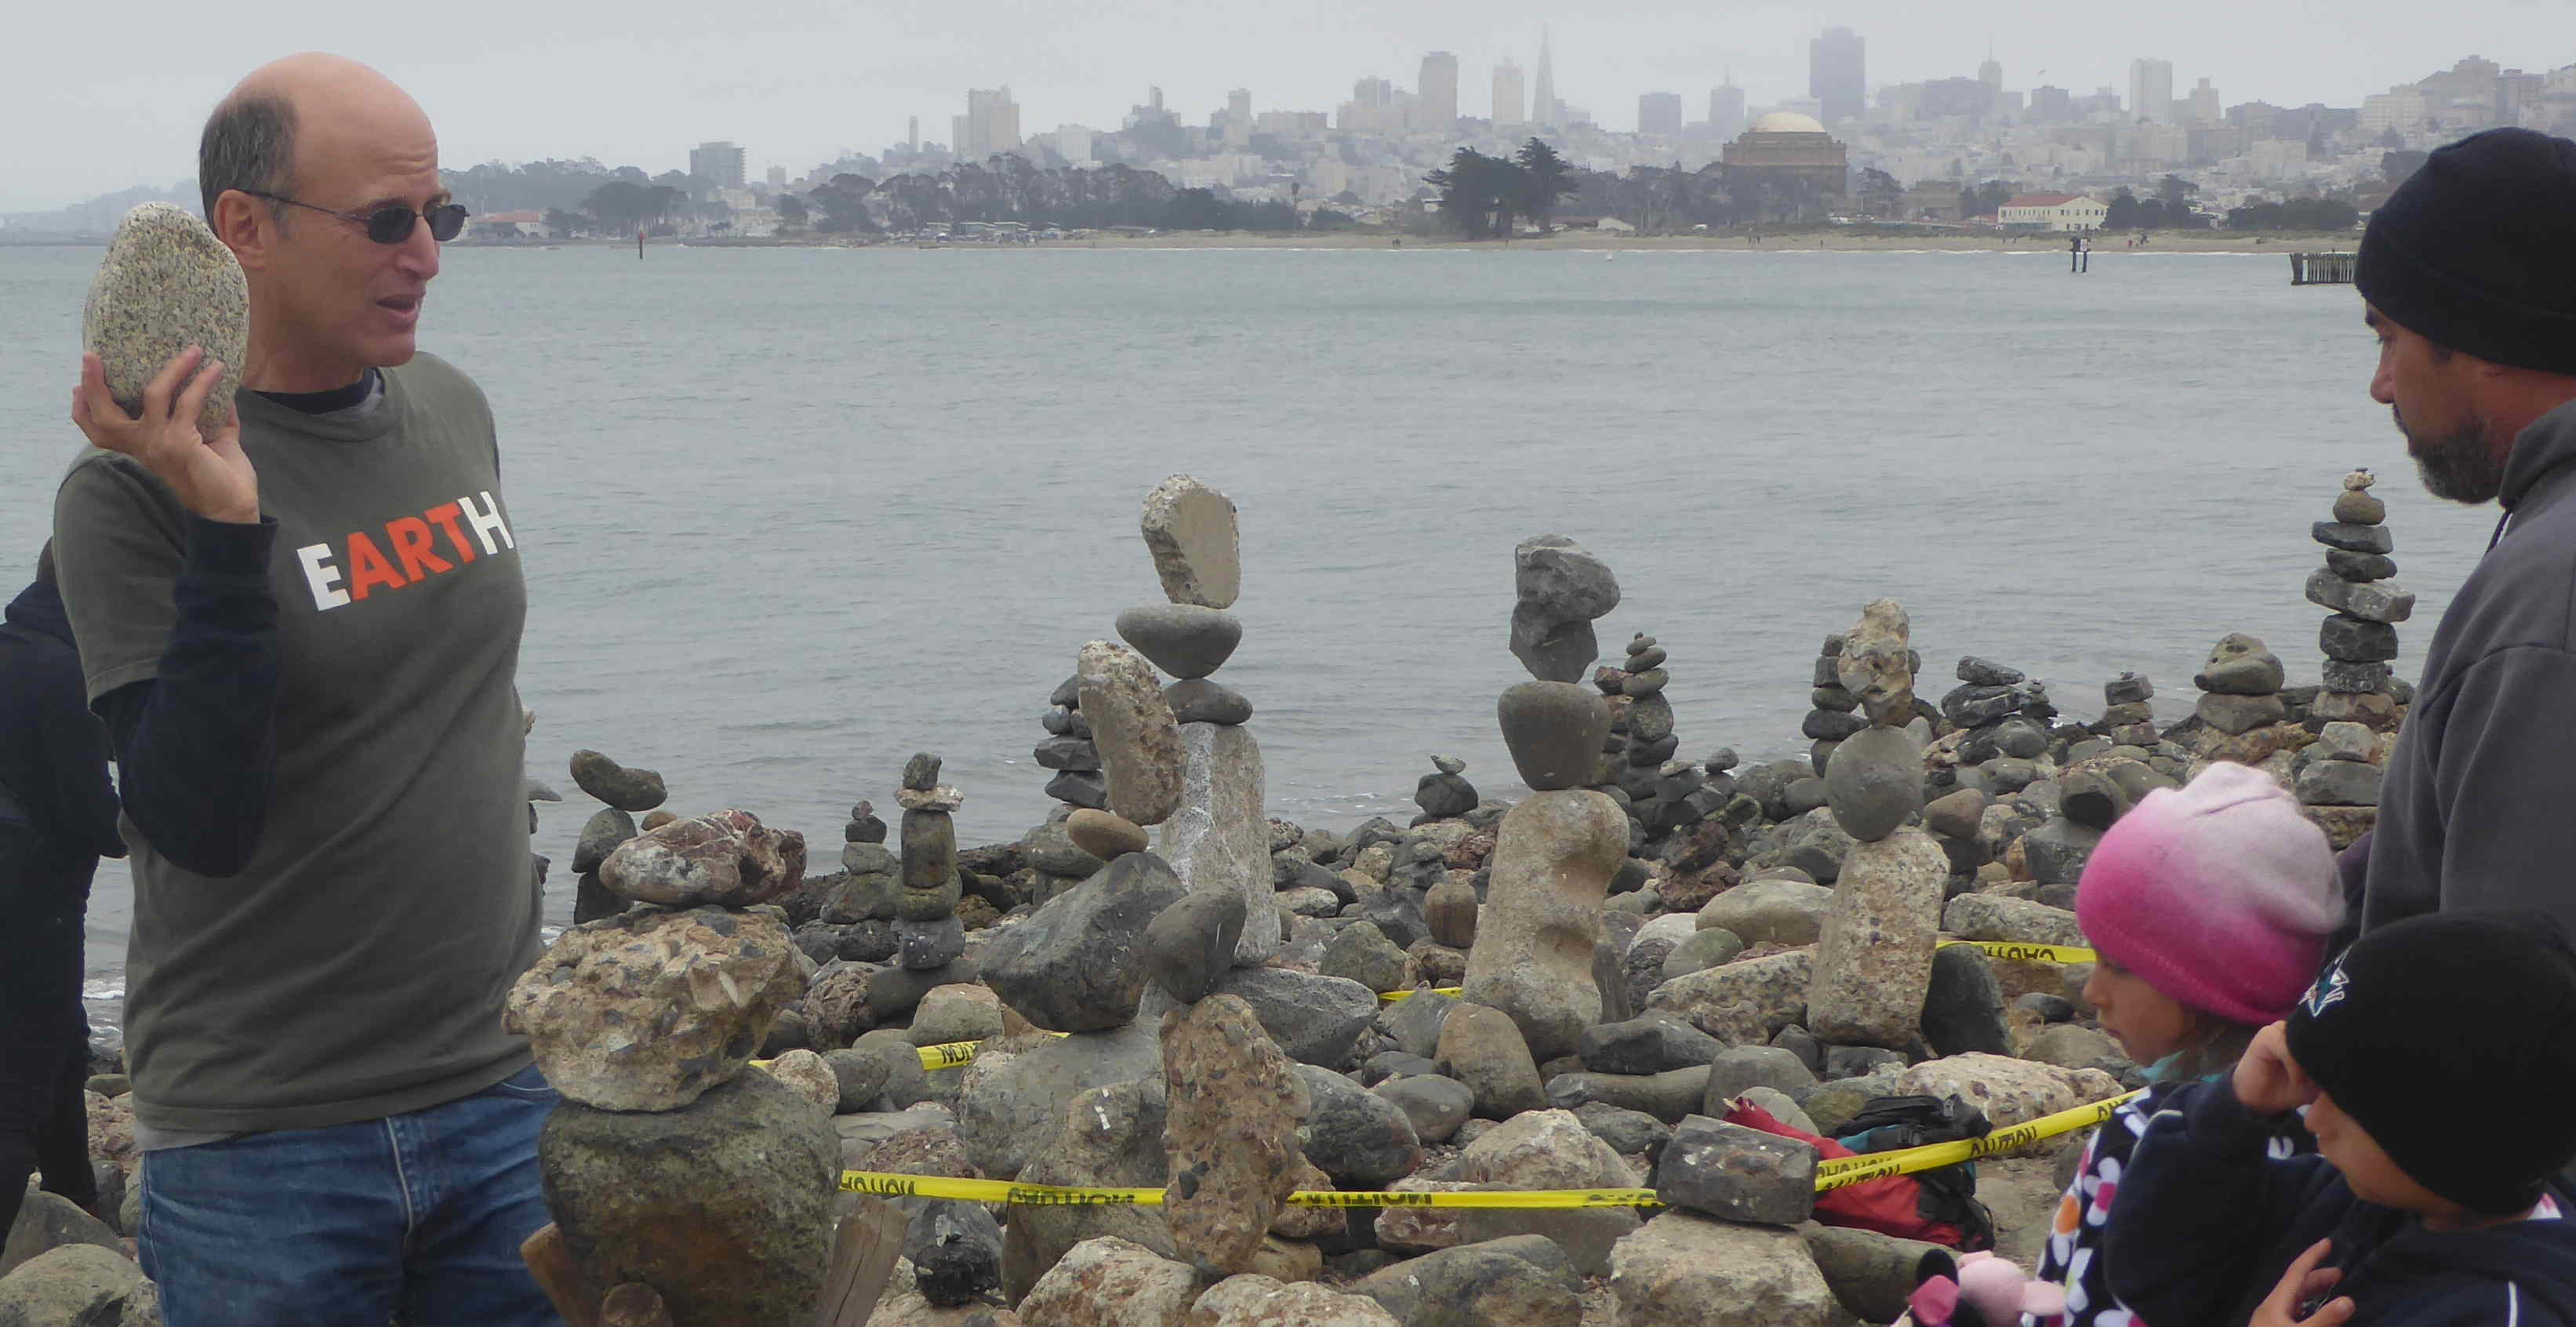 Balancing Rocks Celebration at Crissy Field